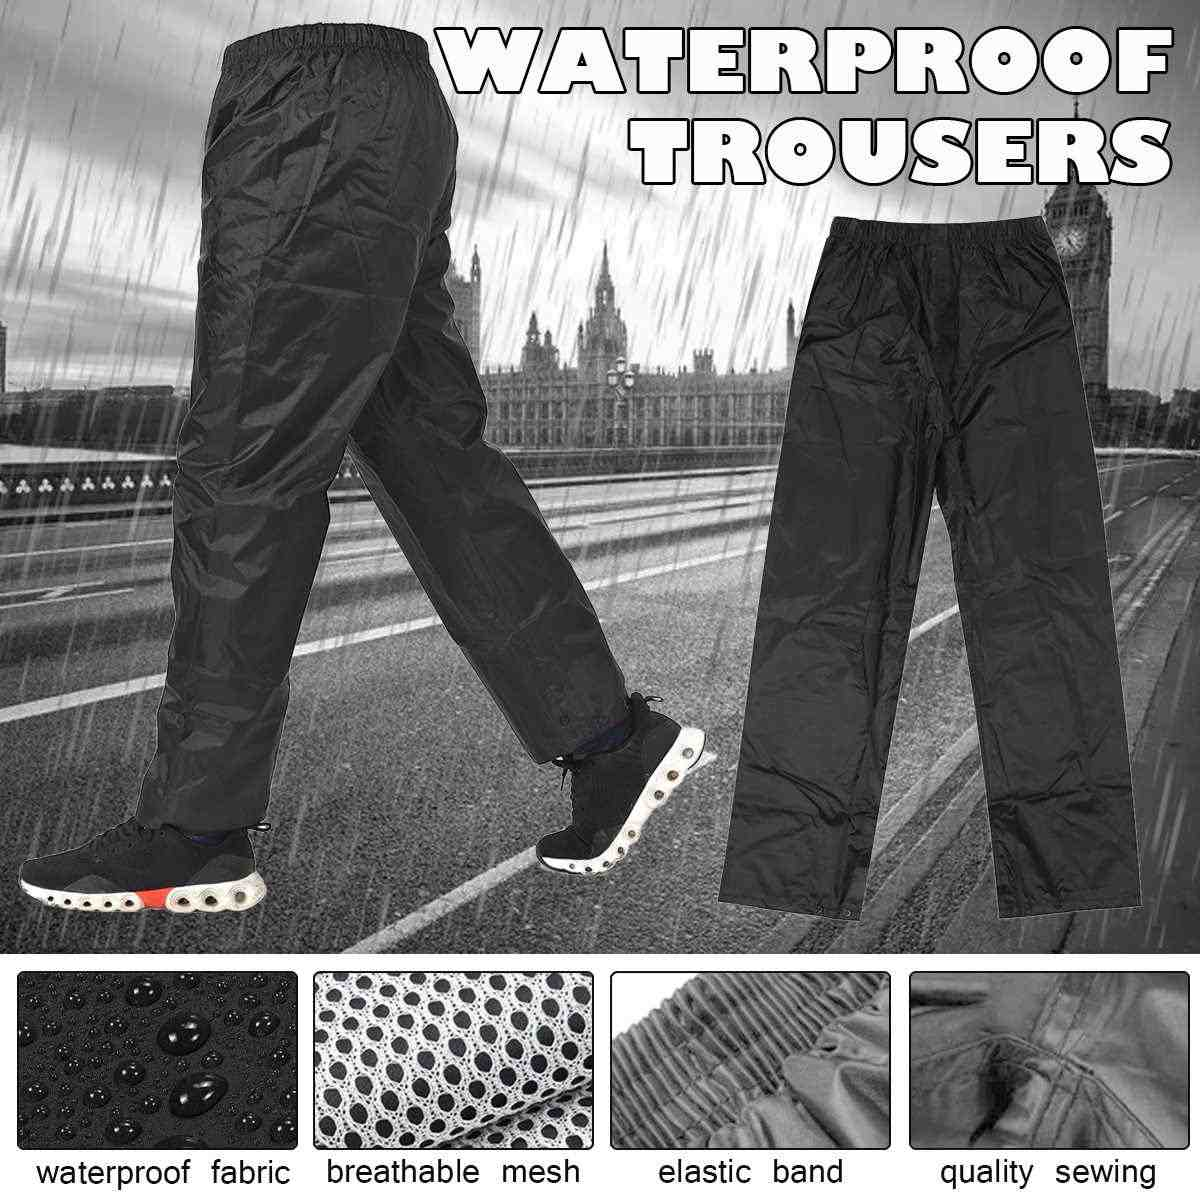 Pantalones Impermeables Para Hombre Y Mujer Impermeables Impermeables Gruesos Para Exterior Para Pesca Camping Lluvia Impermeables Aliexpress